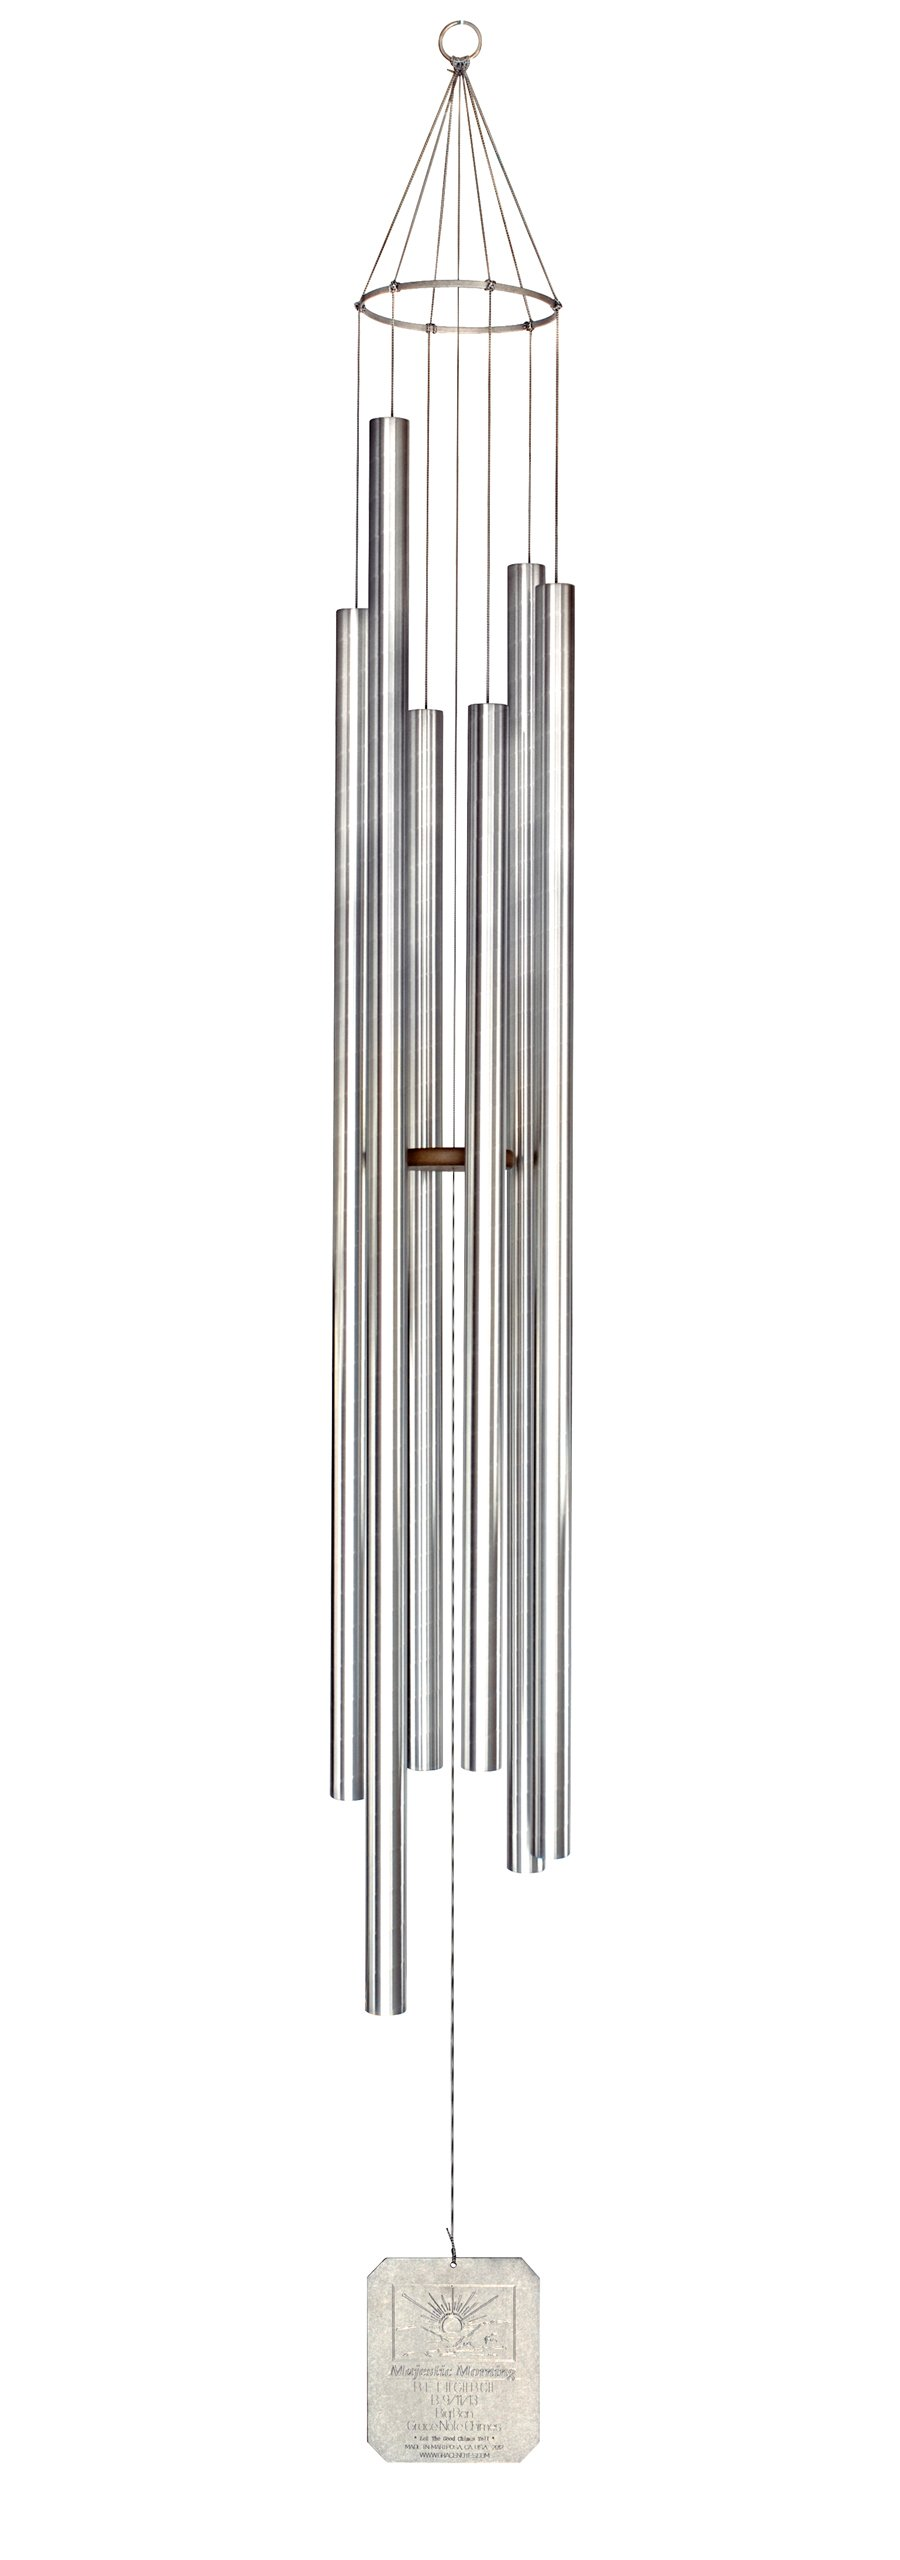 Grace Note Chimes MMX 108-Inch Majestic Morning Wind Chimes, X-Large, Silver